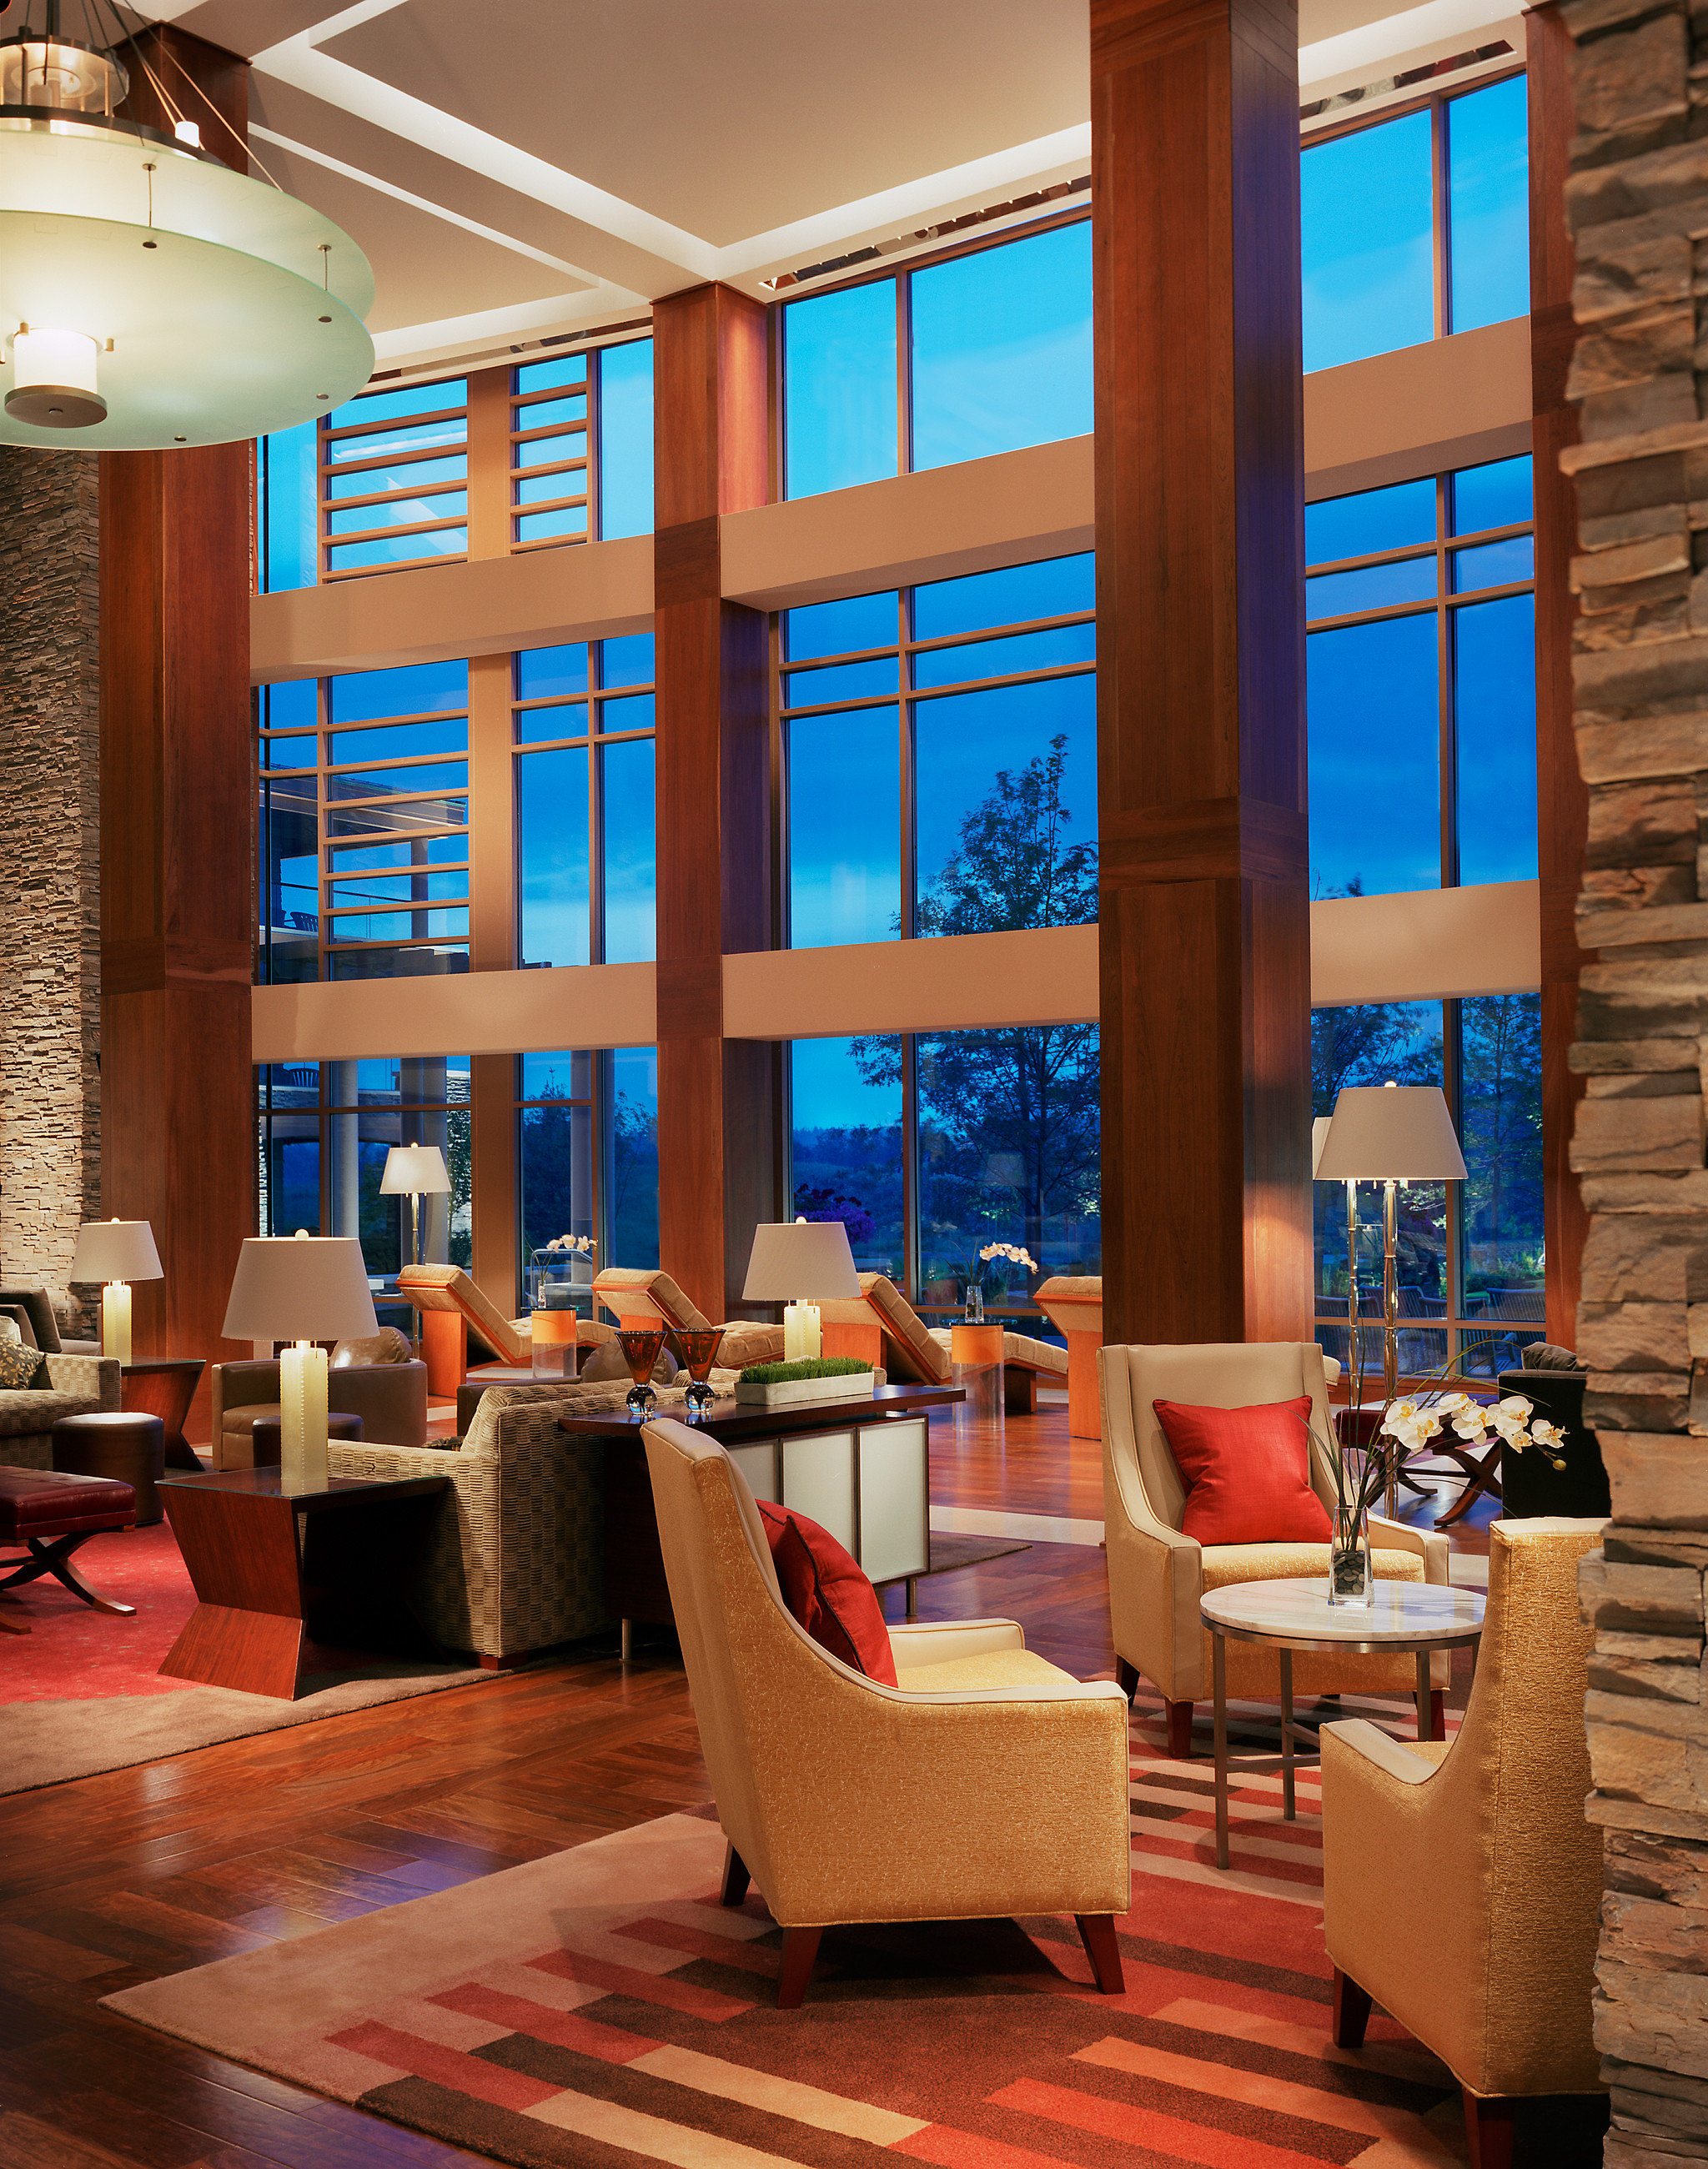 Lobby Lounge Modern Resort Scenic views color living room home